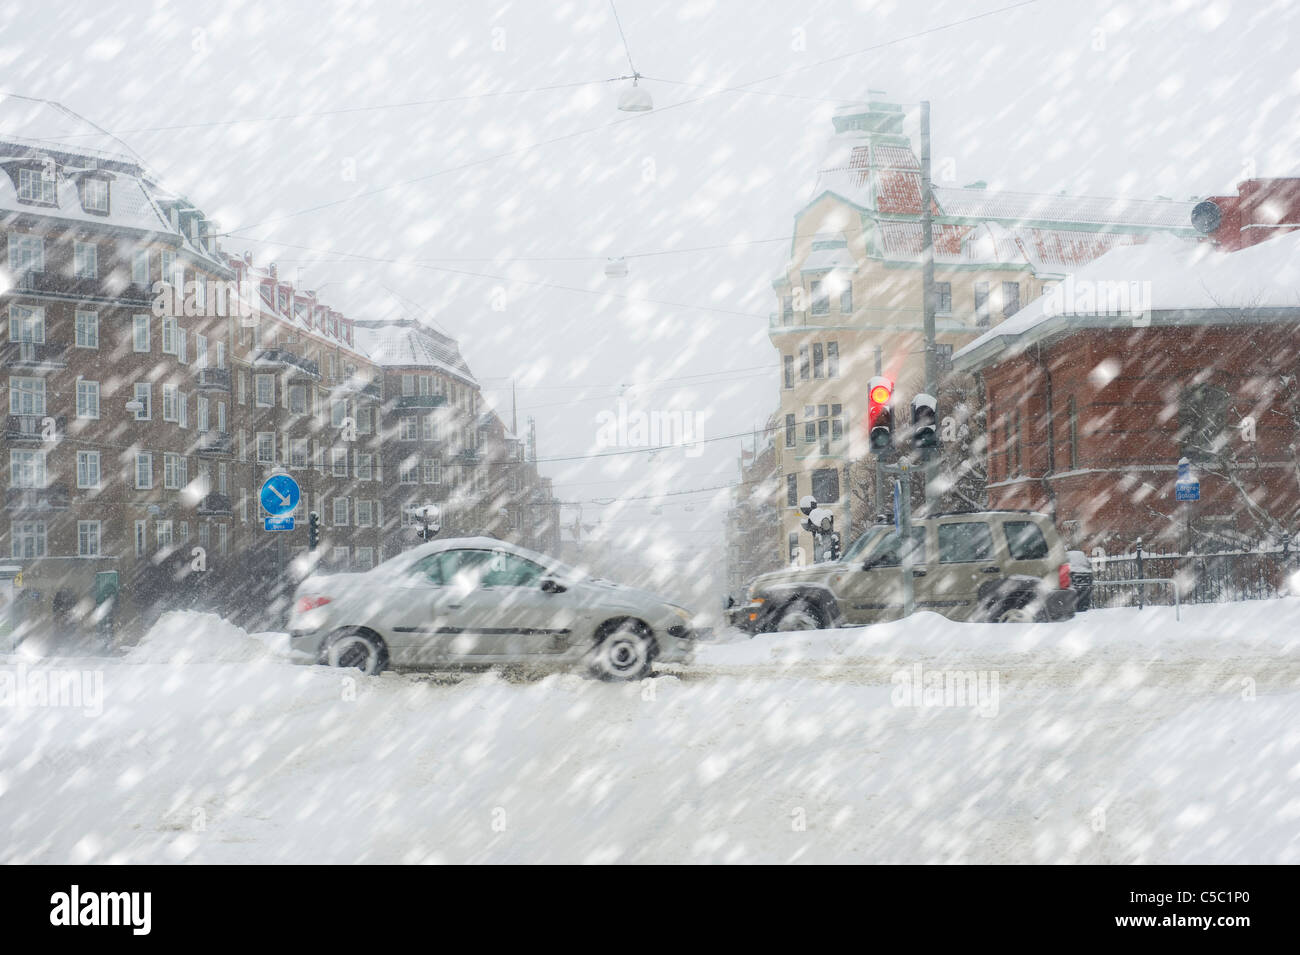 Le chaos de la neige en ville contre des bâtiments Photo Stock